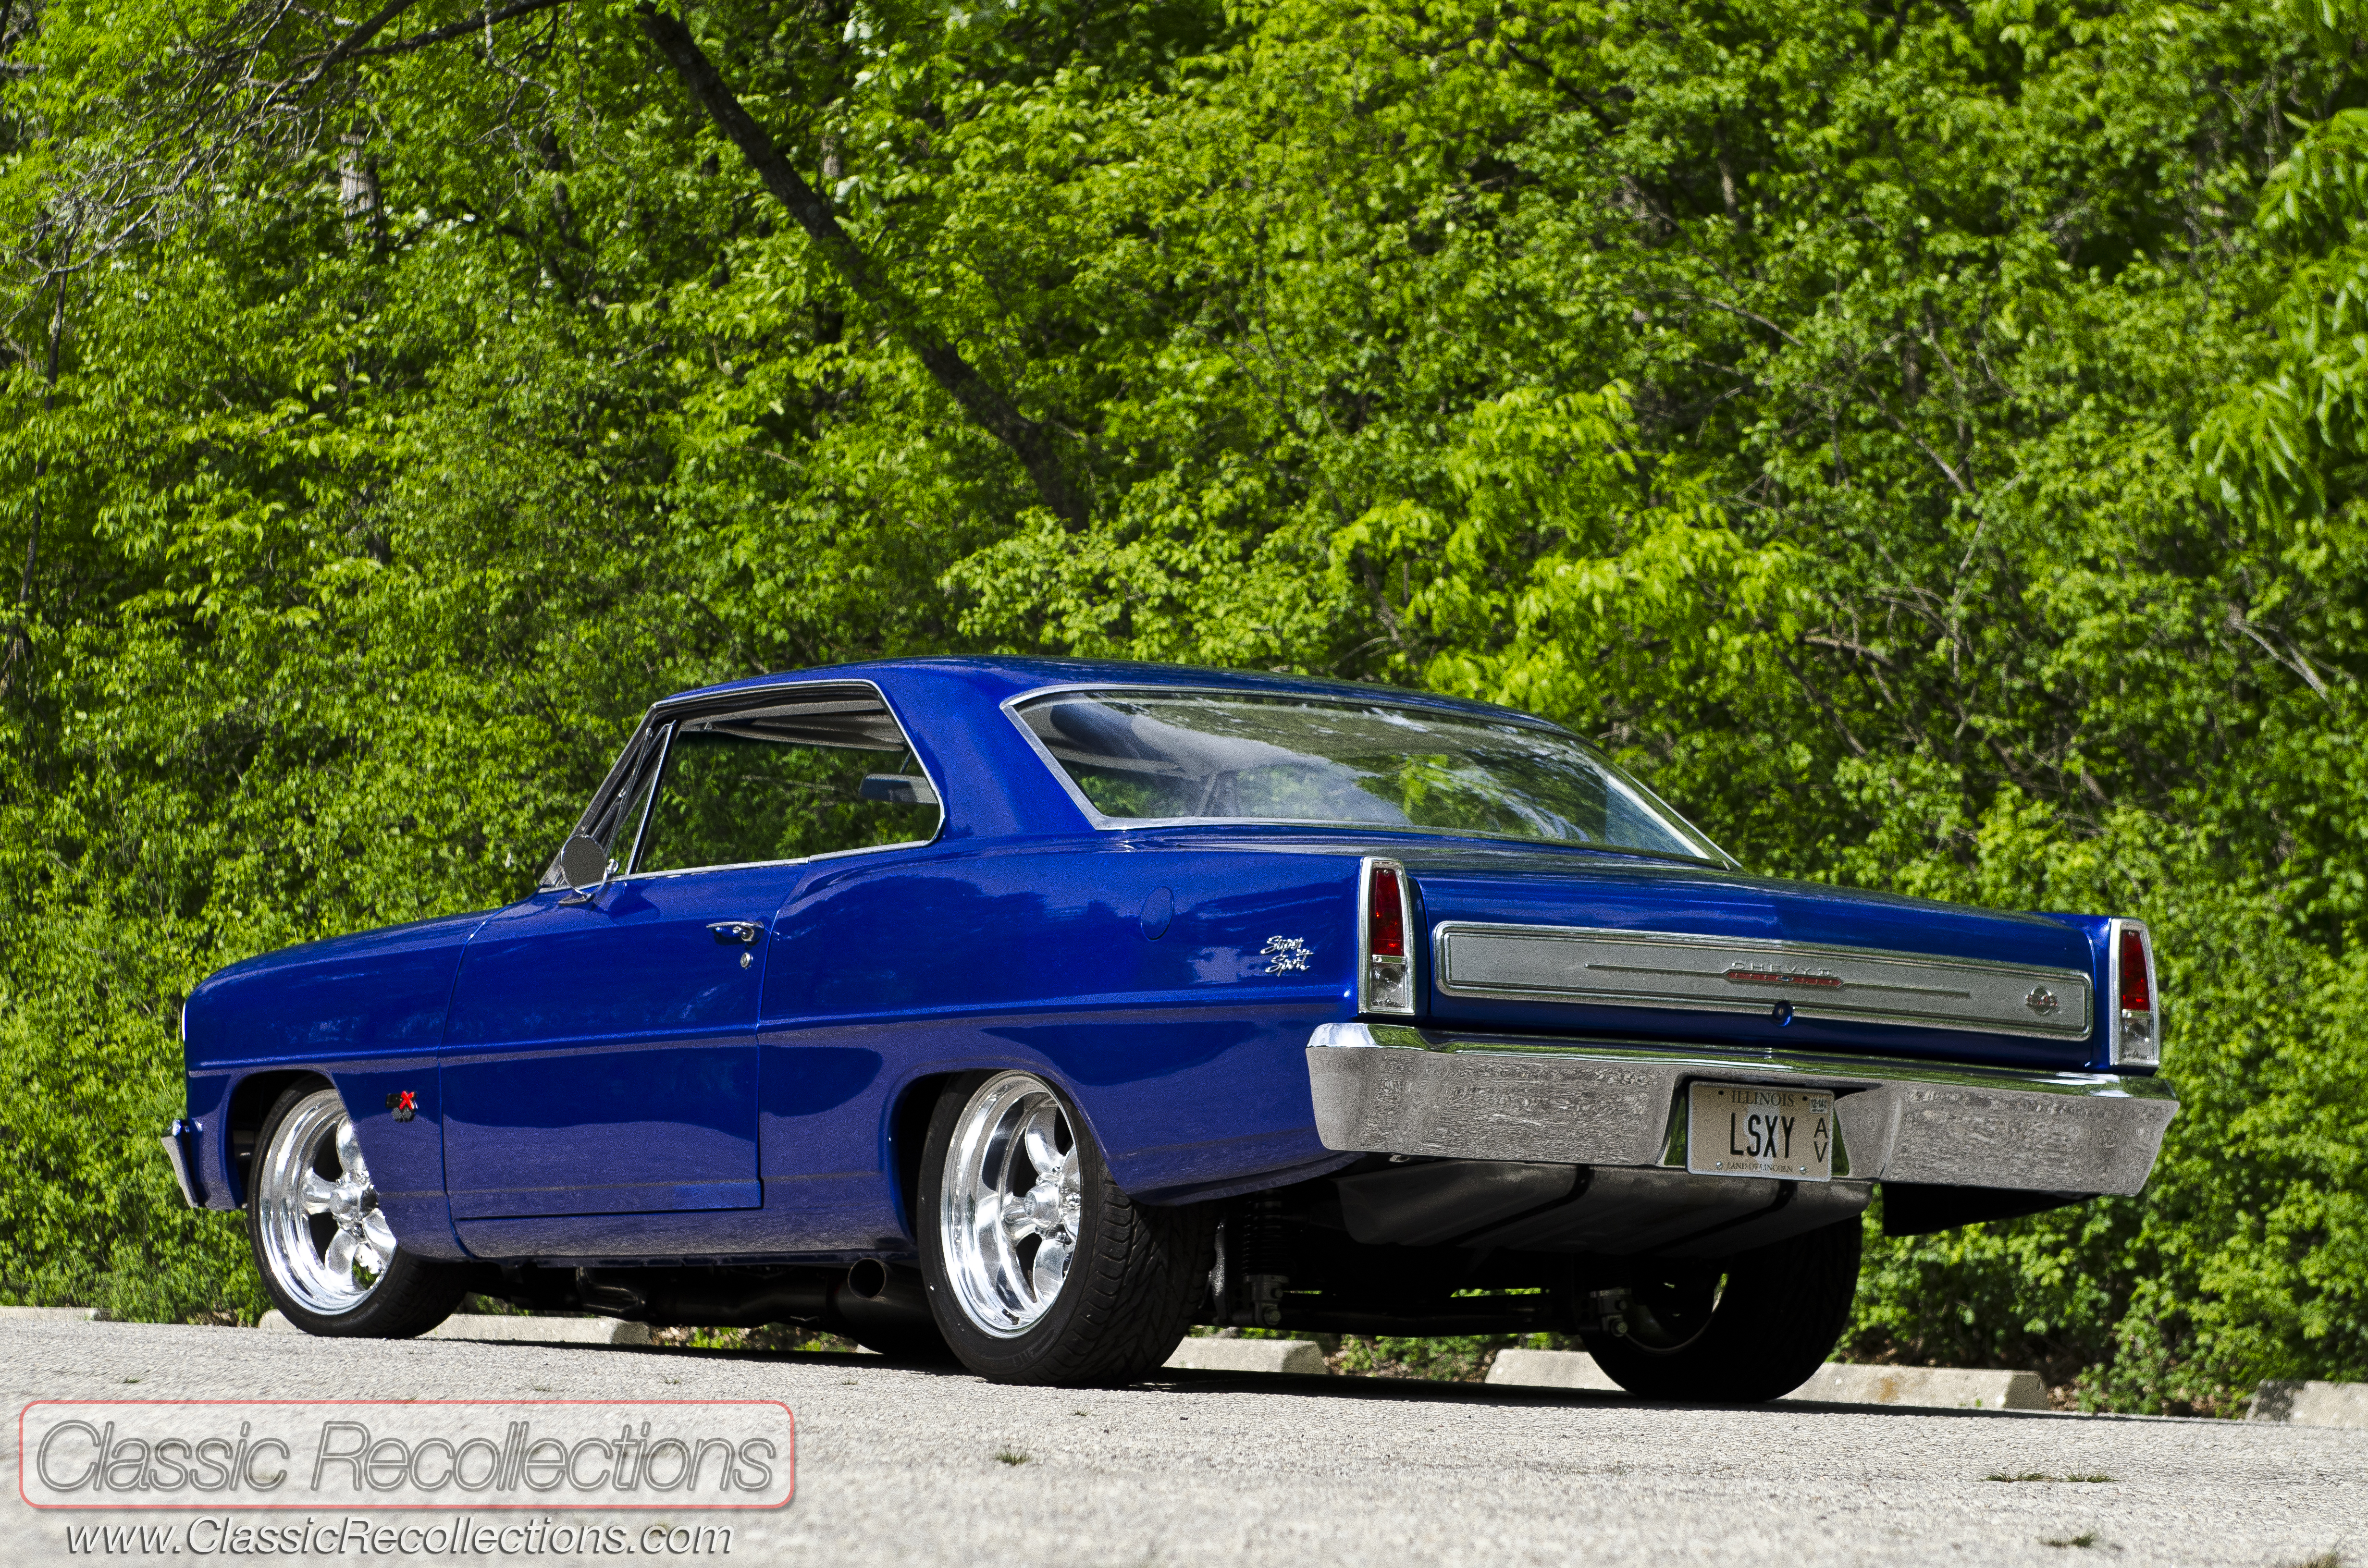 after a full overhaul this 1966 chevrolet chevy ii nova turned into a wild custom the exterior paint color is impulse blue - Blue Auto Paint Colors